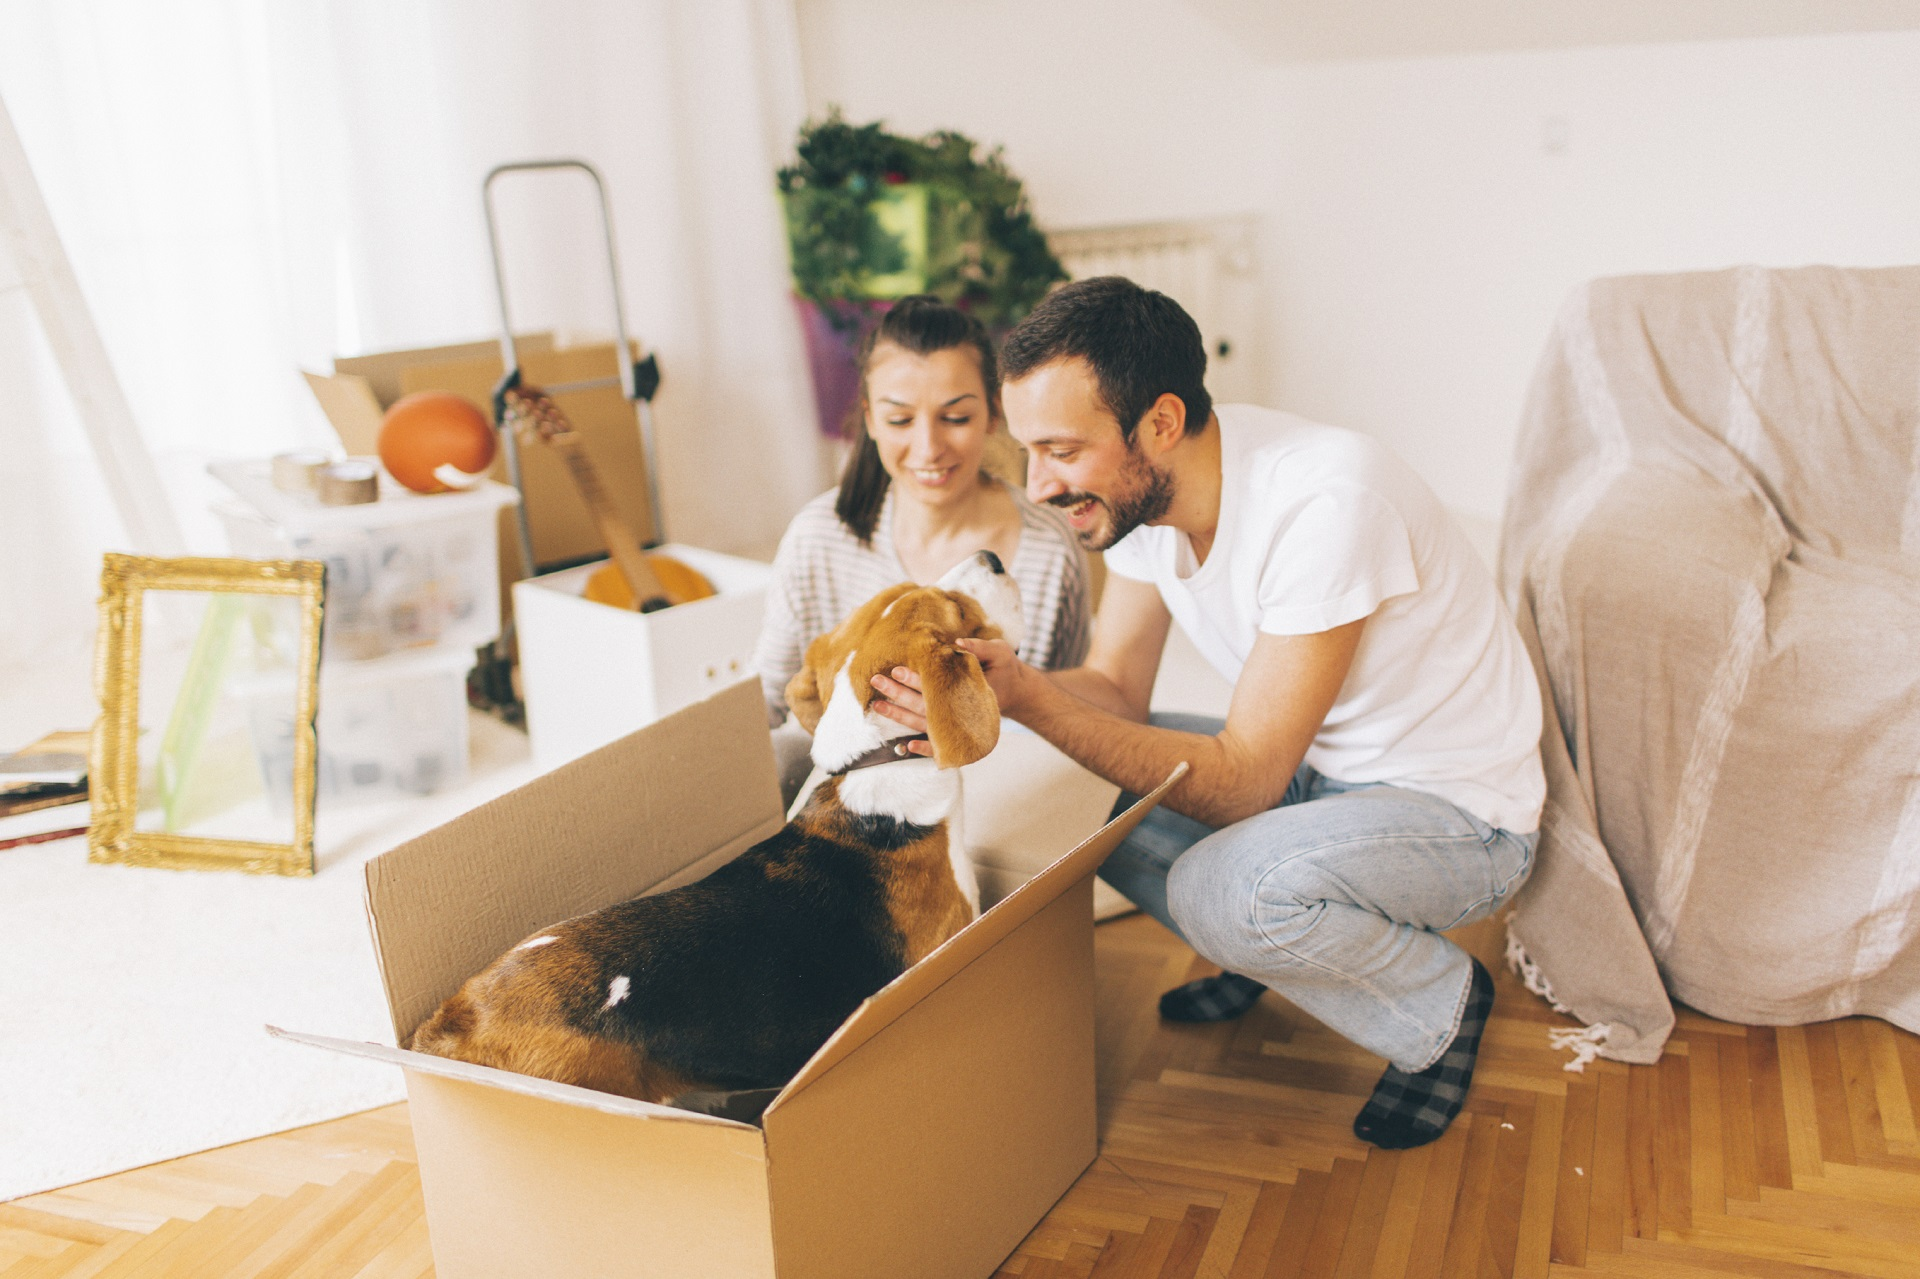 How Pet-Friendly Is Your Property?